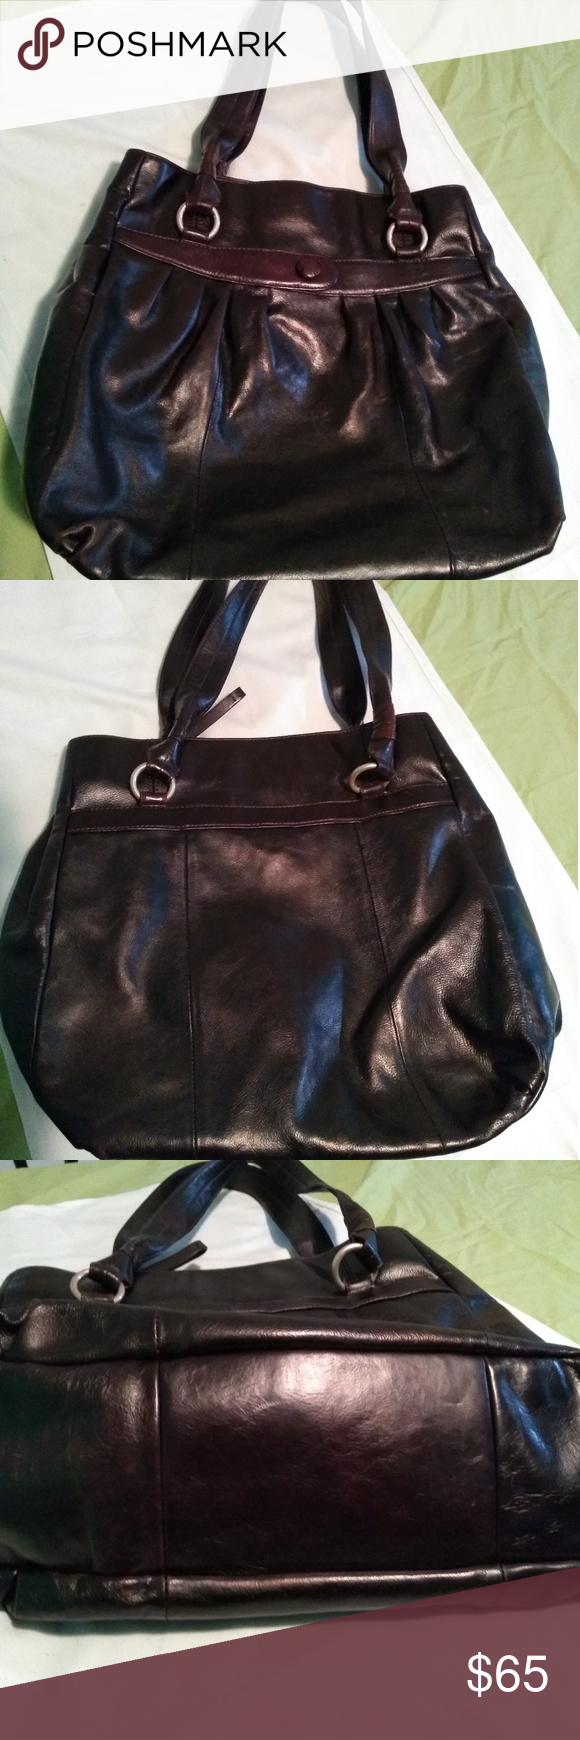 Sigrid Olsen cocoa leather tote Sigrid Olsen cocoa leather tote. Extremely  good condition. Brasso the handle rings and it will be good as new. 57812cfd89